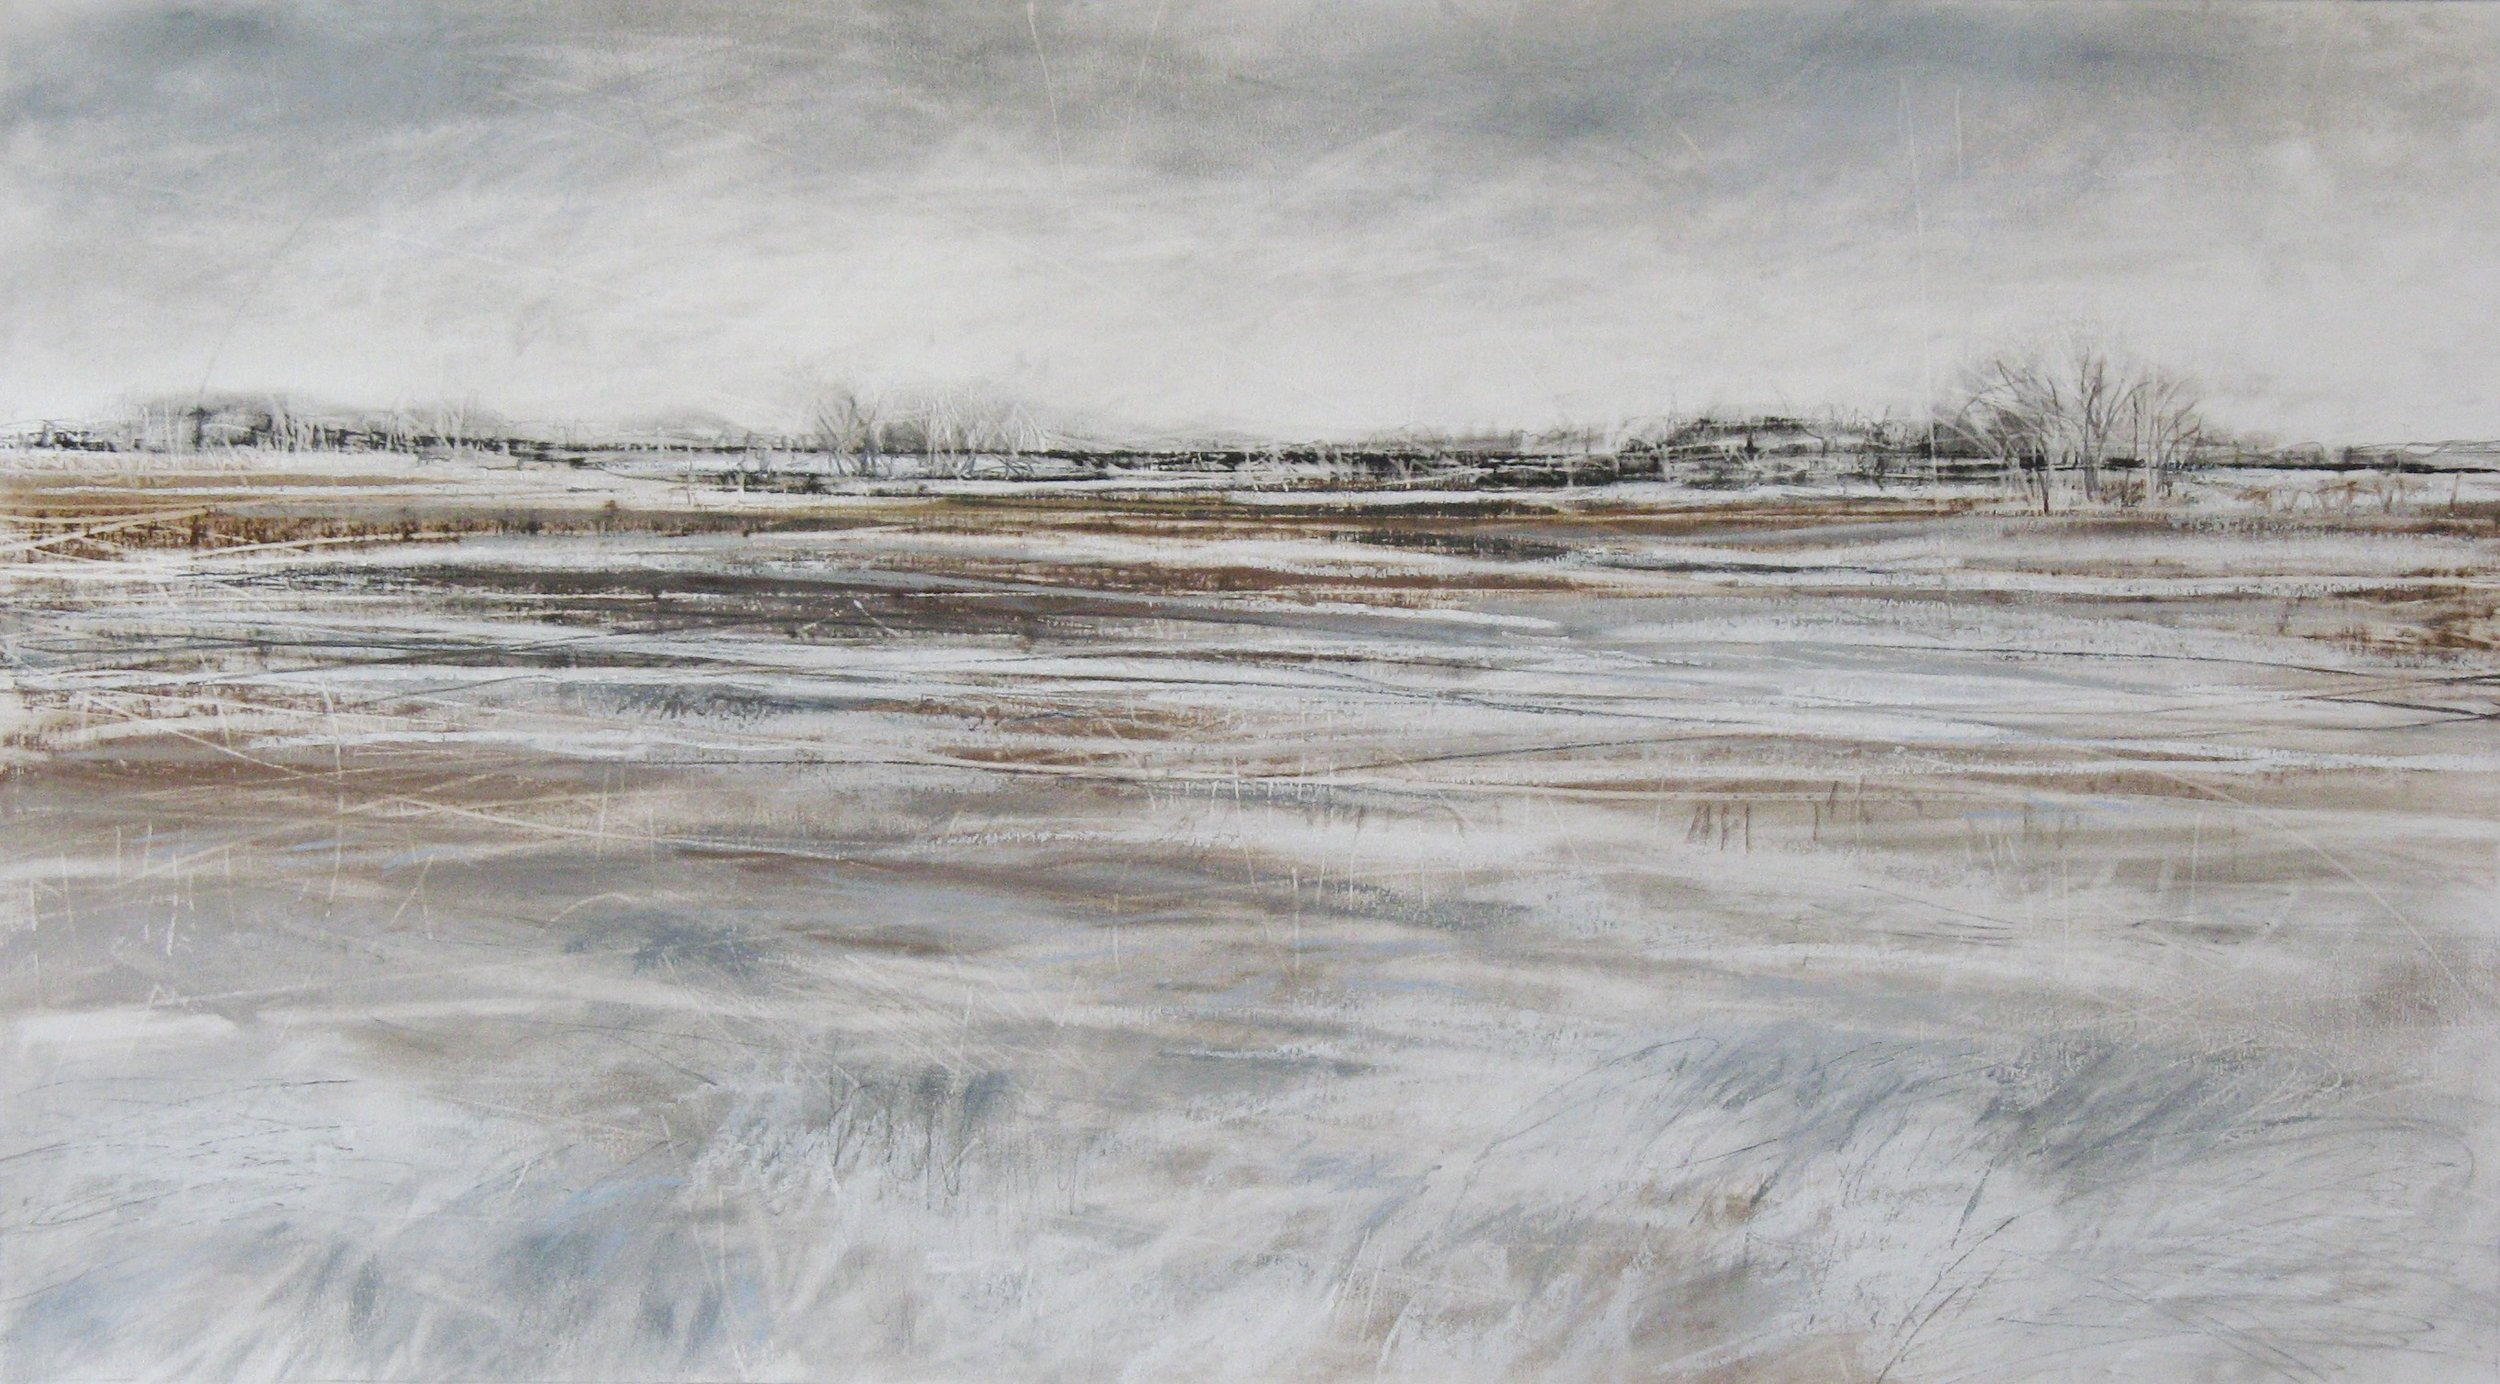 Snow Tracks  Pastel, Charcoal and Graphite on Paper  30 x 54cm  £495